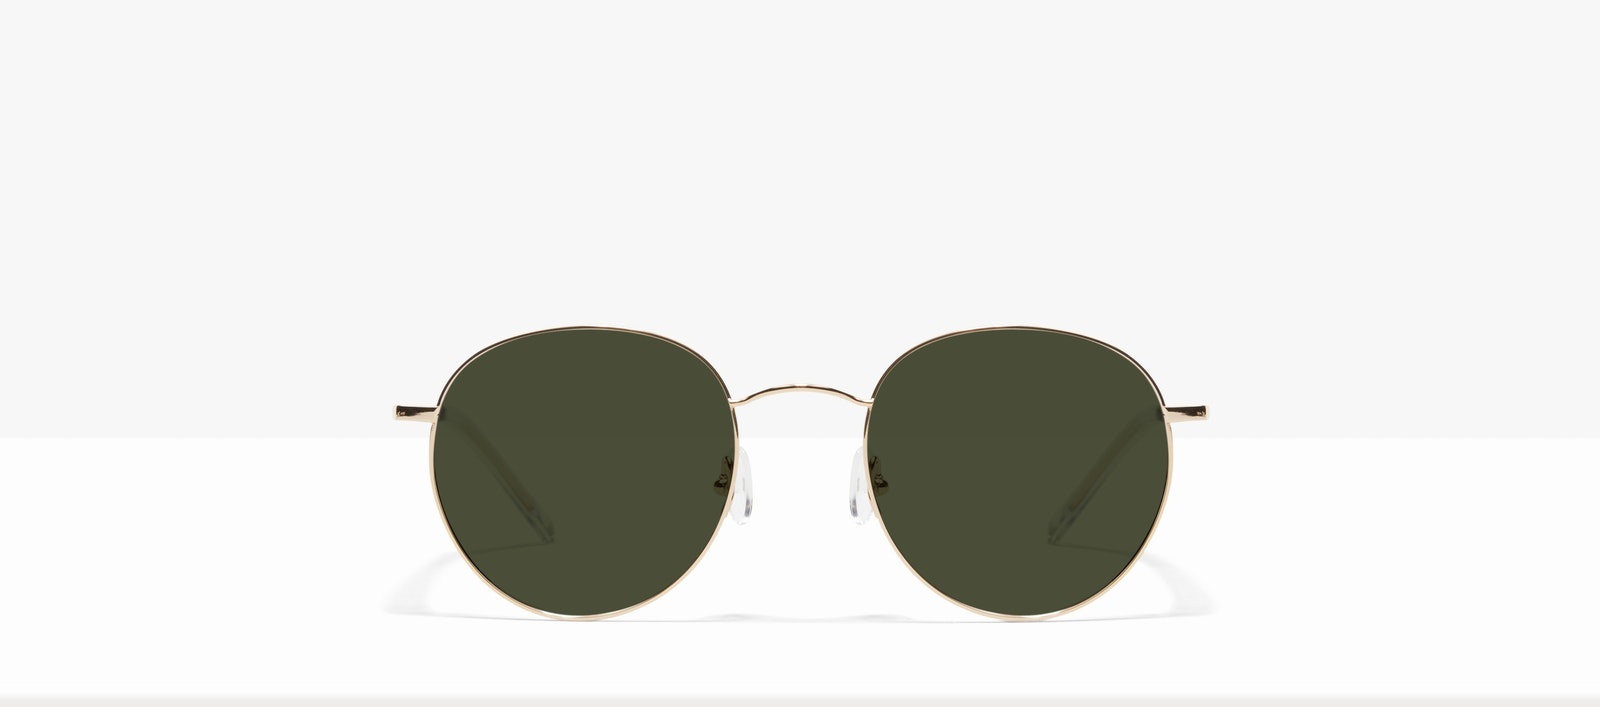 Affordable Fashion Glasses Round Sunglasses Women Calibre Gold Front